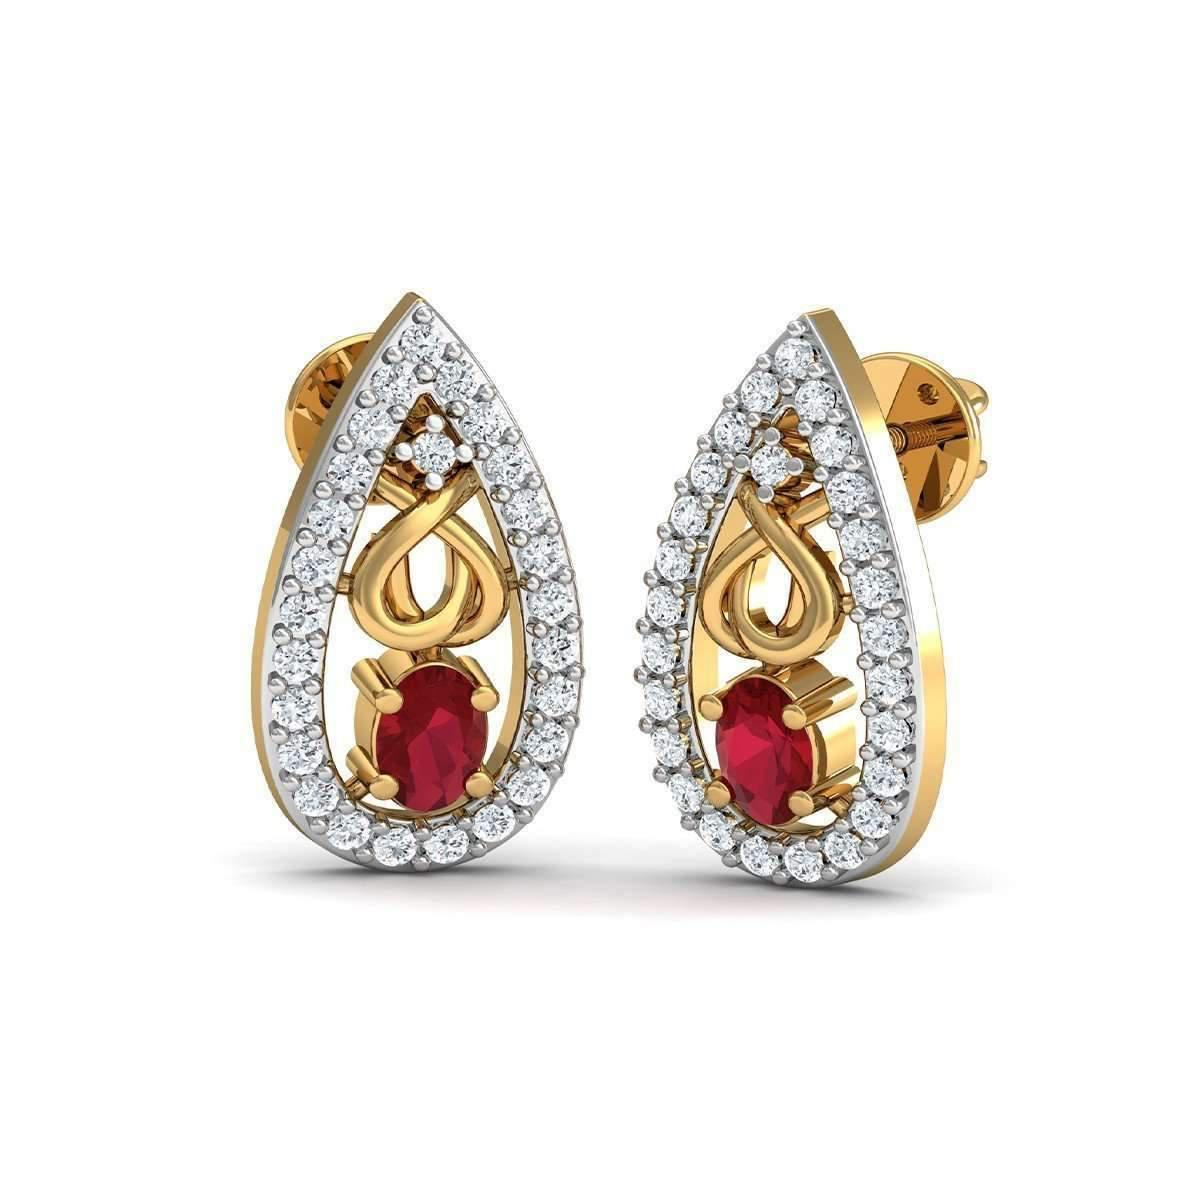 Diamoire Jewels African Oval Cut Ruby and Diamond Earrings Hand-carved in 18kt Yellow Gold LBzAh